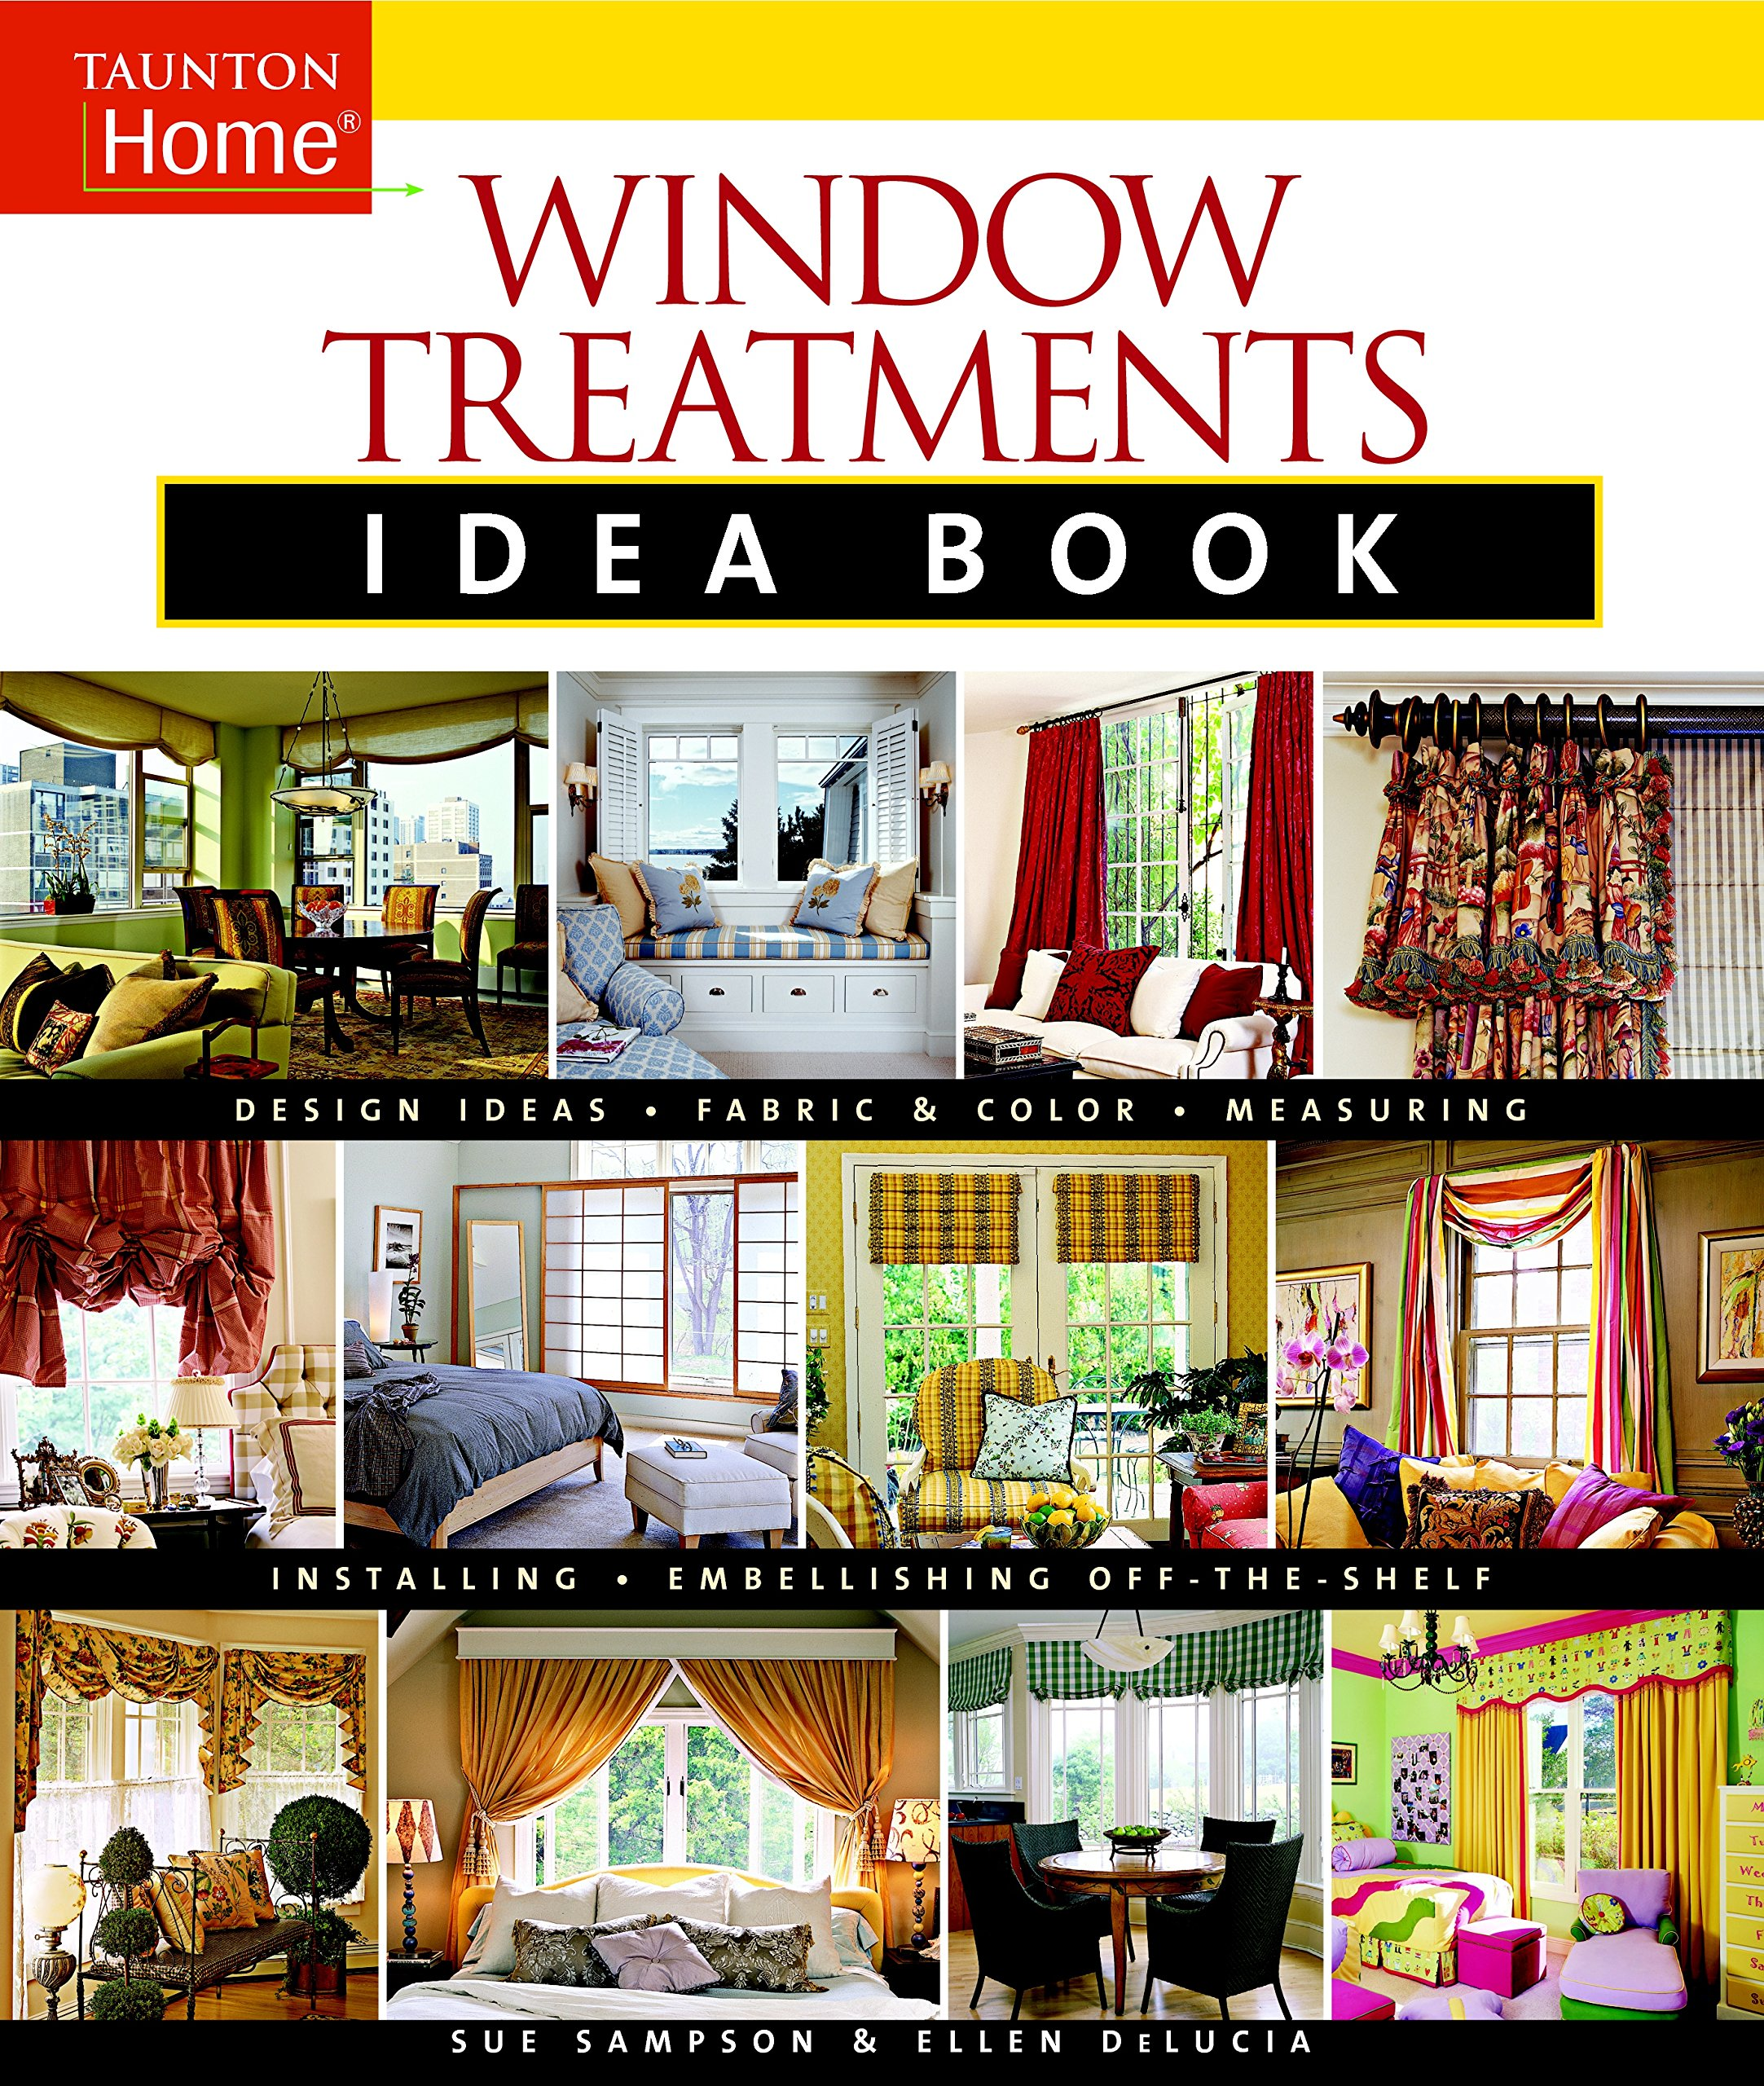 Window Treatments Idea Book Design Ideas Fabric Color